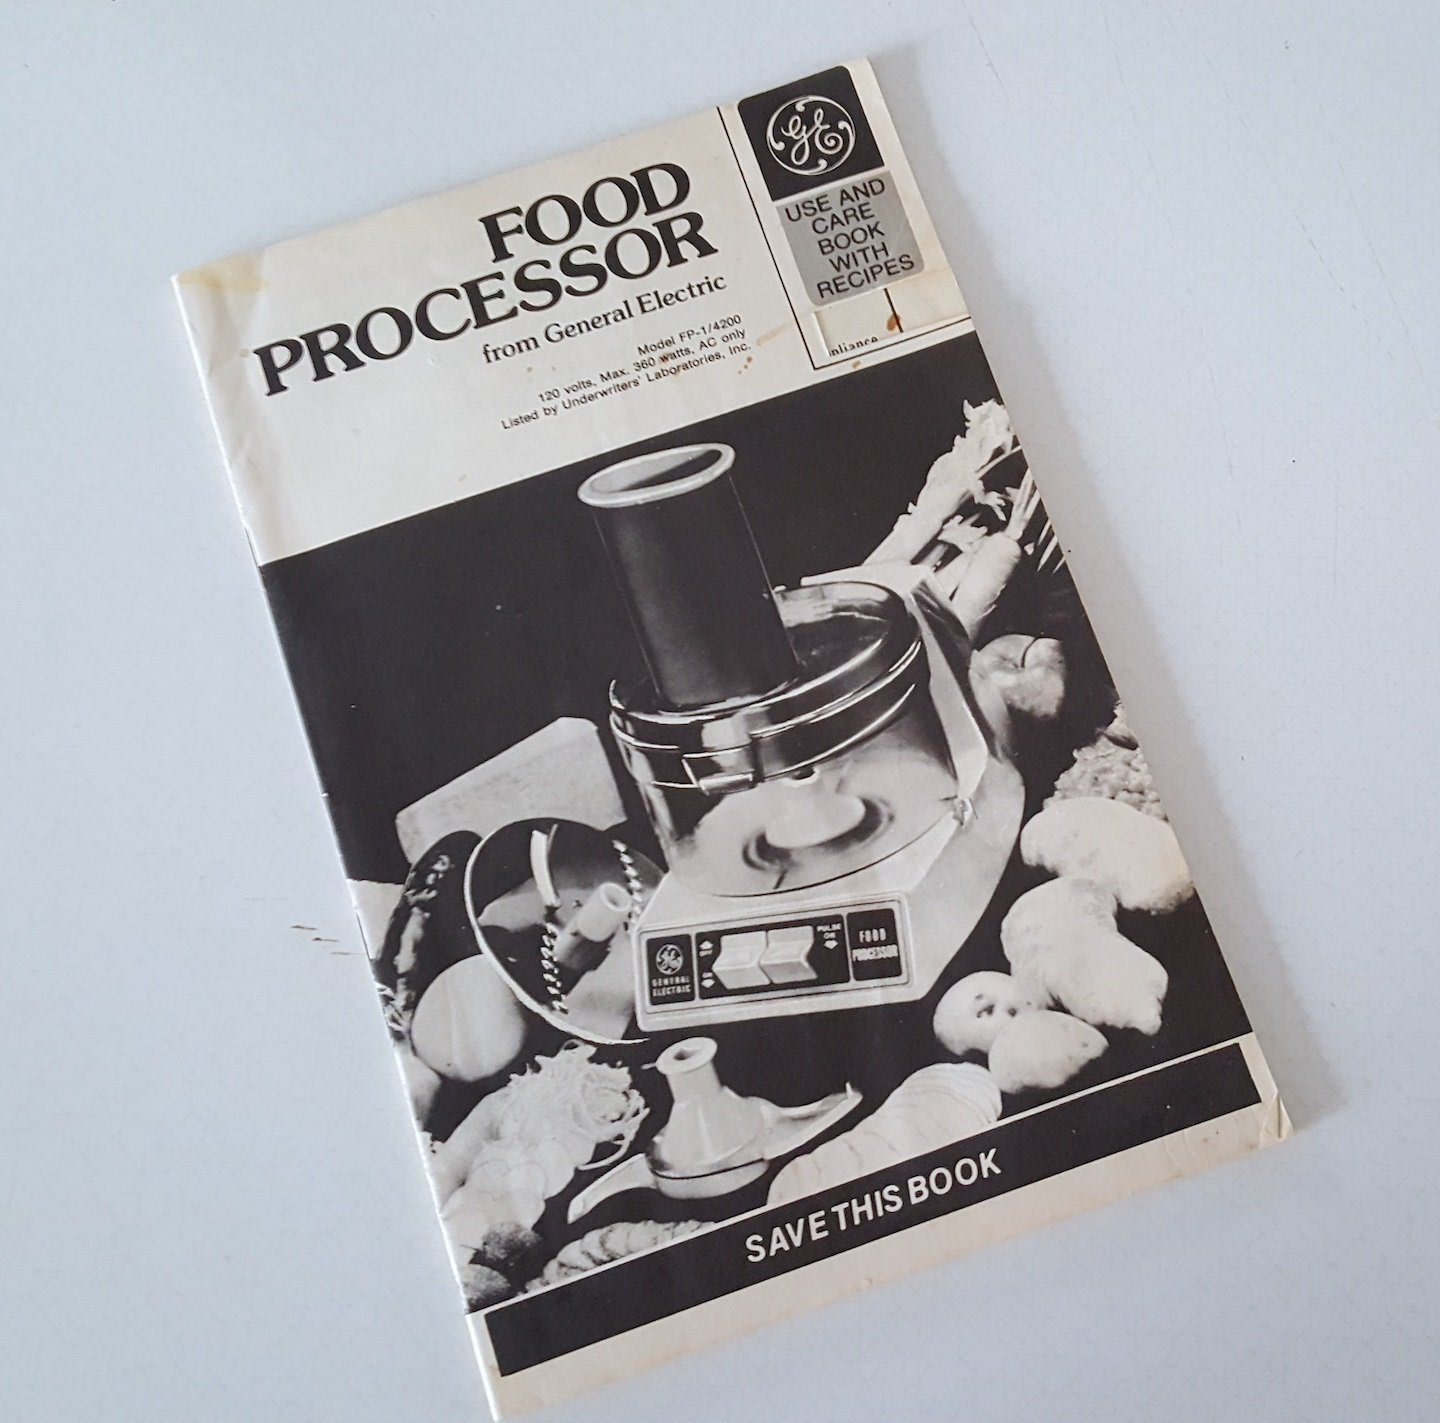 1978 General Electric Food Processor Use & Care Book with Recipes Booklet